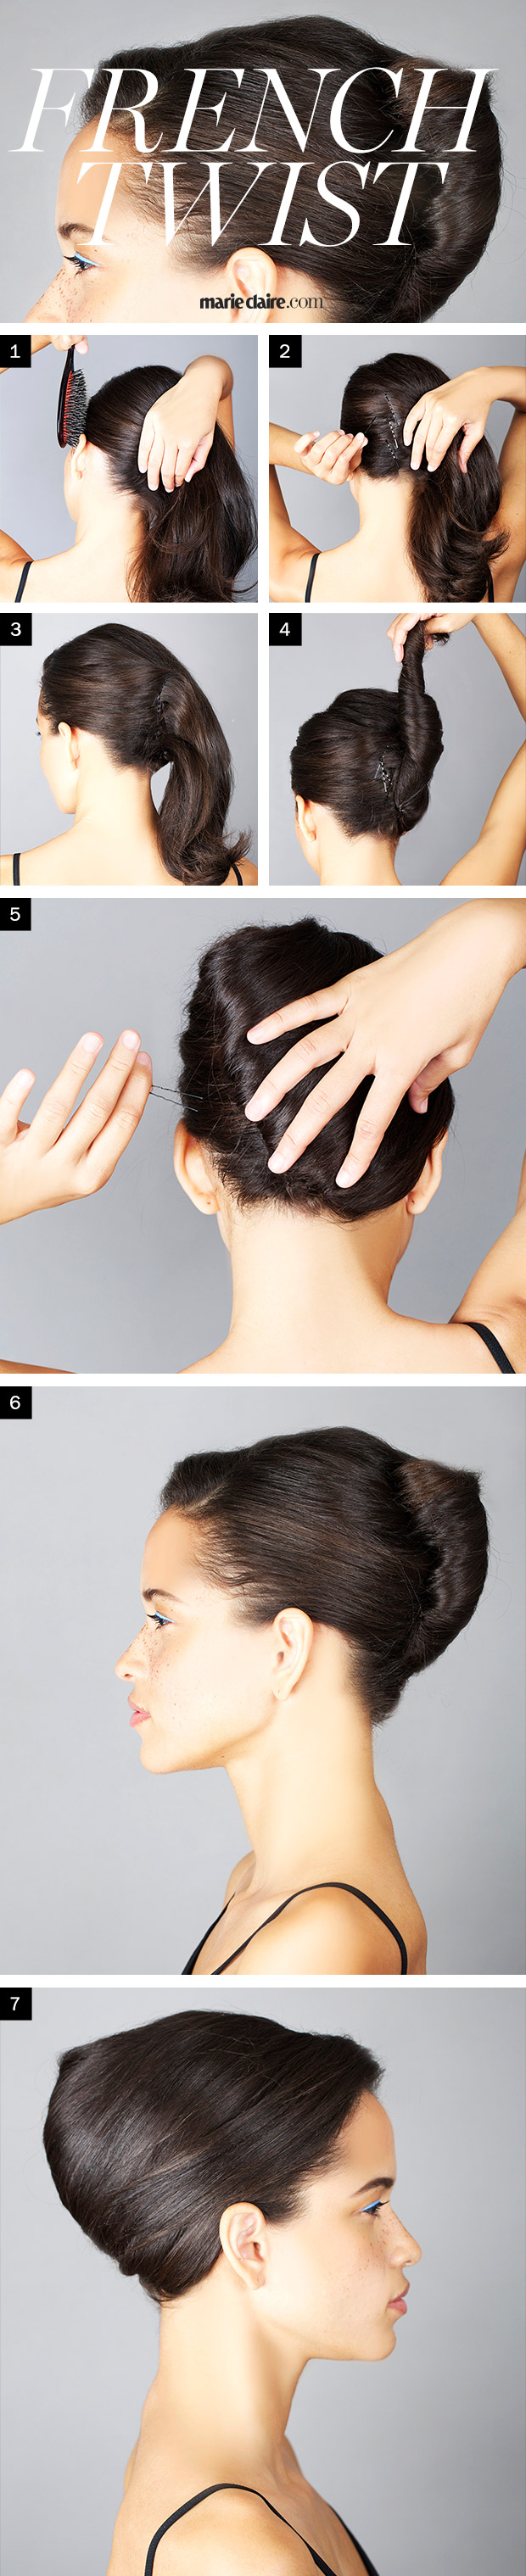 5483292c5aa1a_-_mcx-french-twist-how-to.jpg